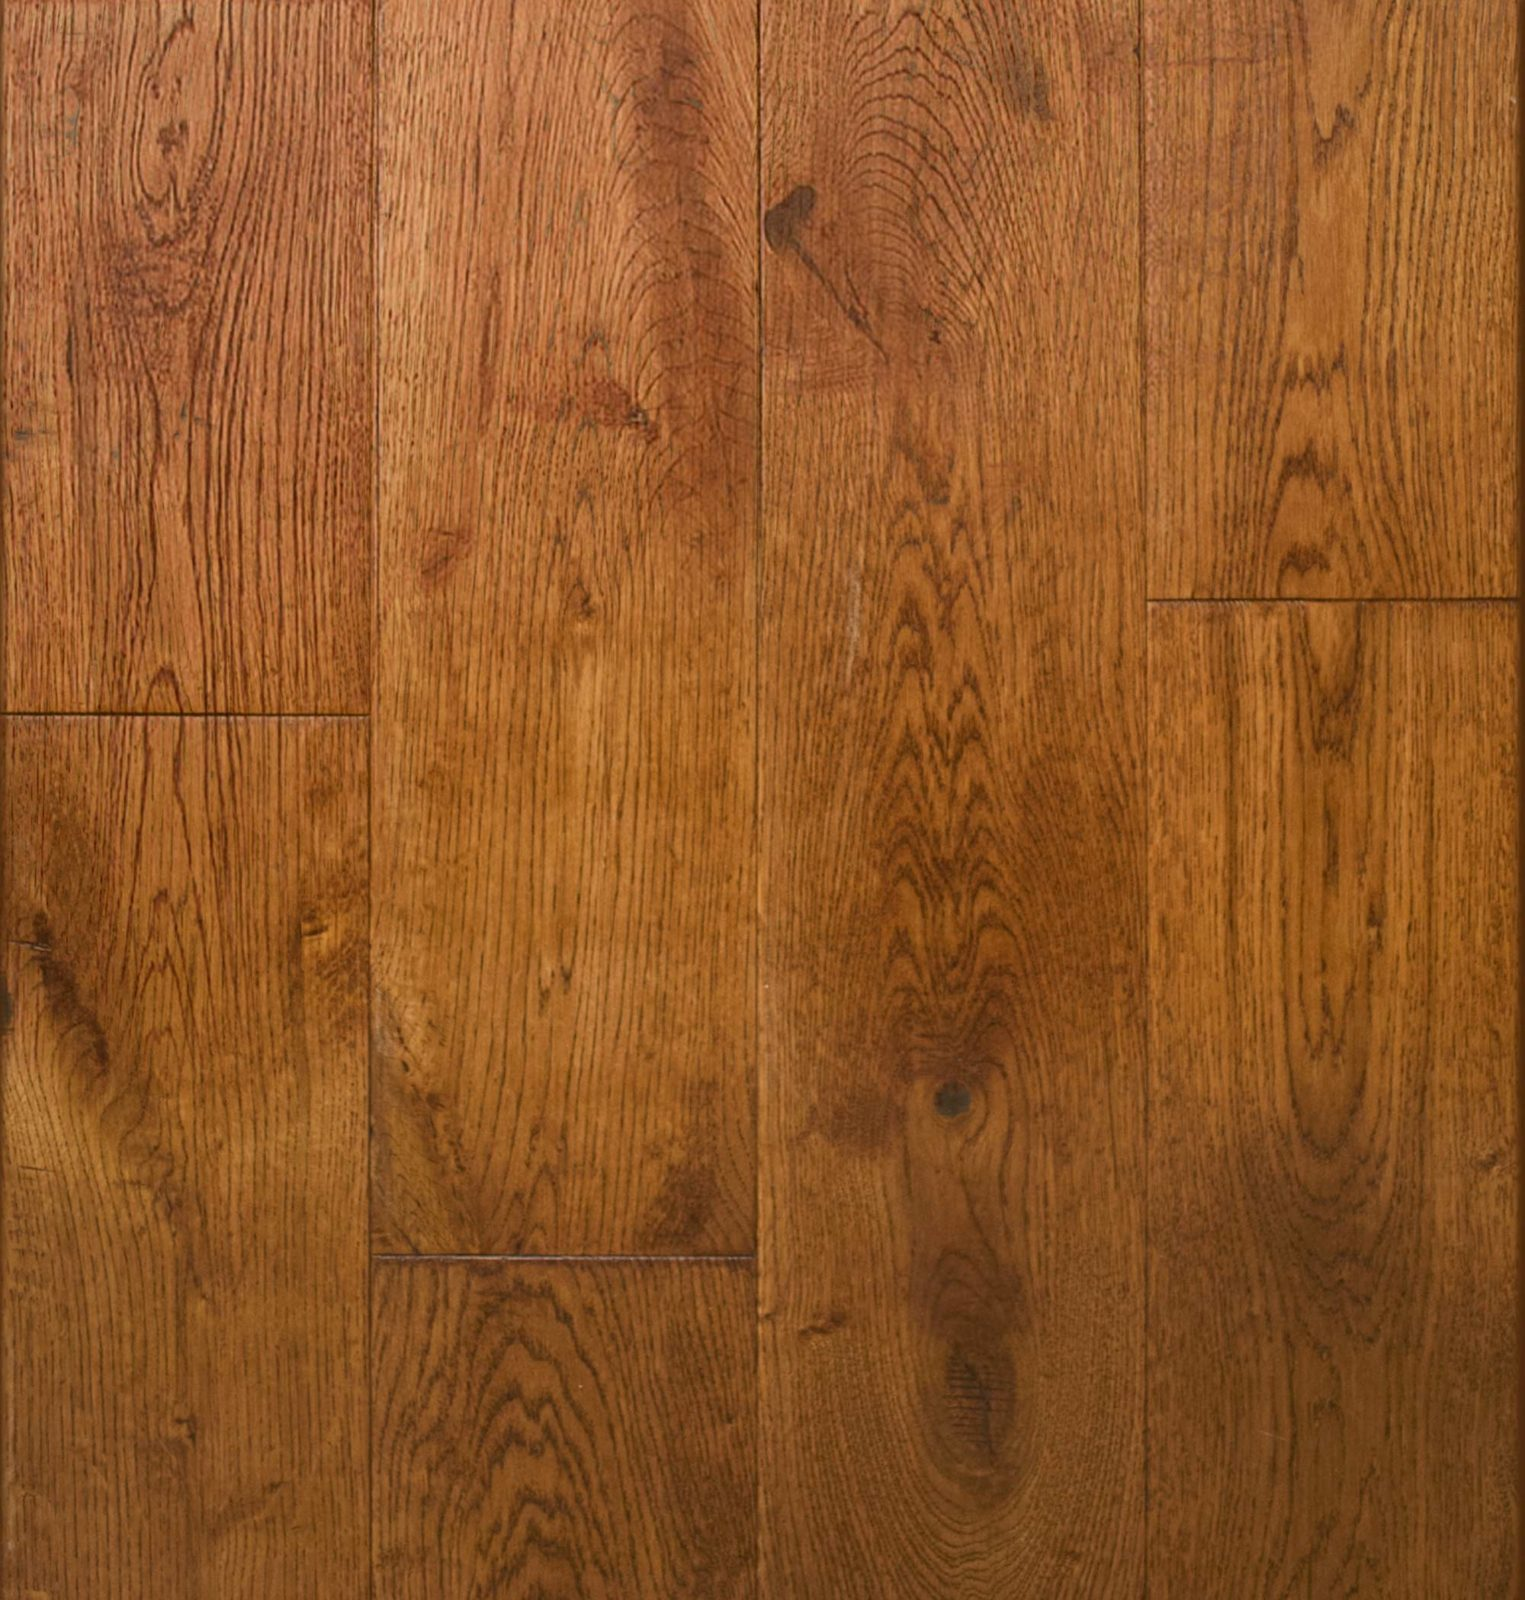 Golden Oak Handsed Flooring